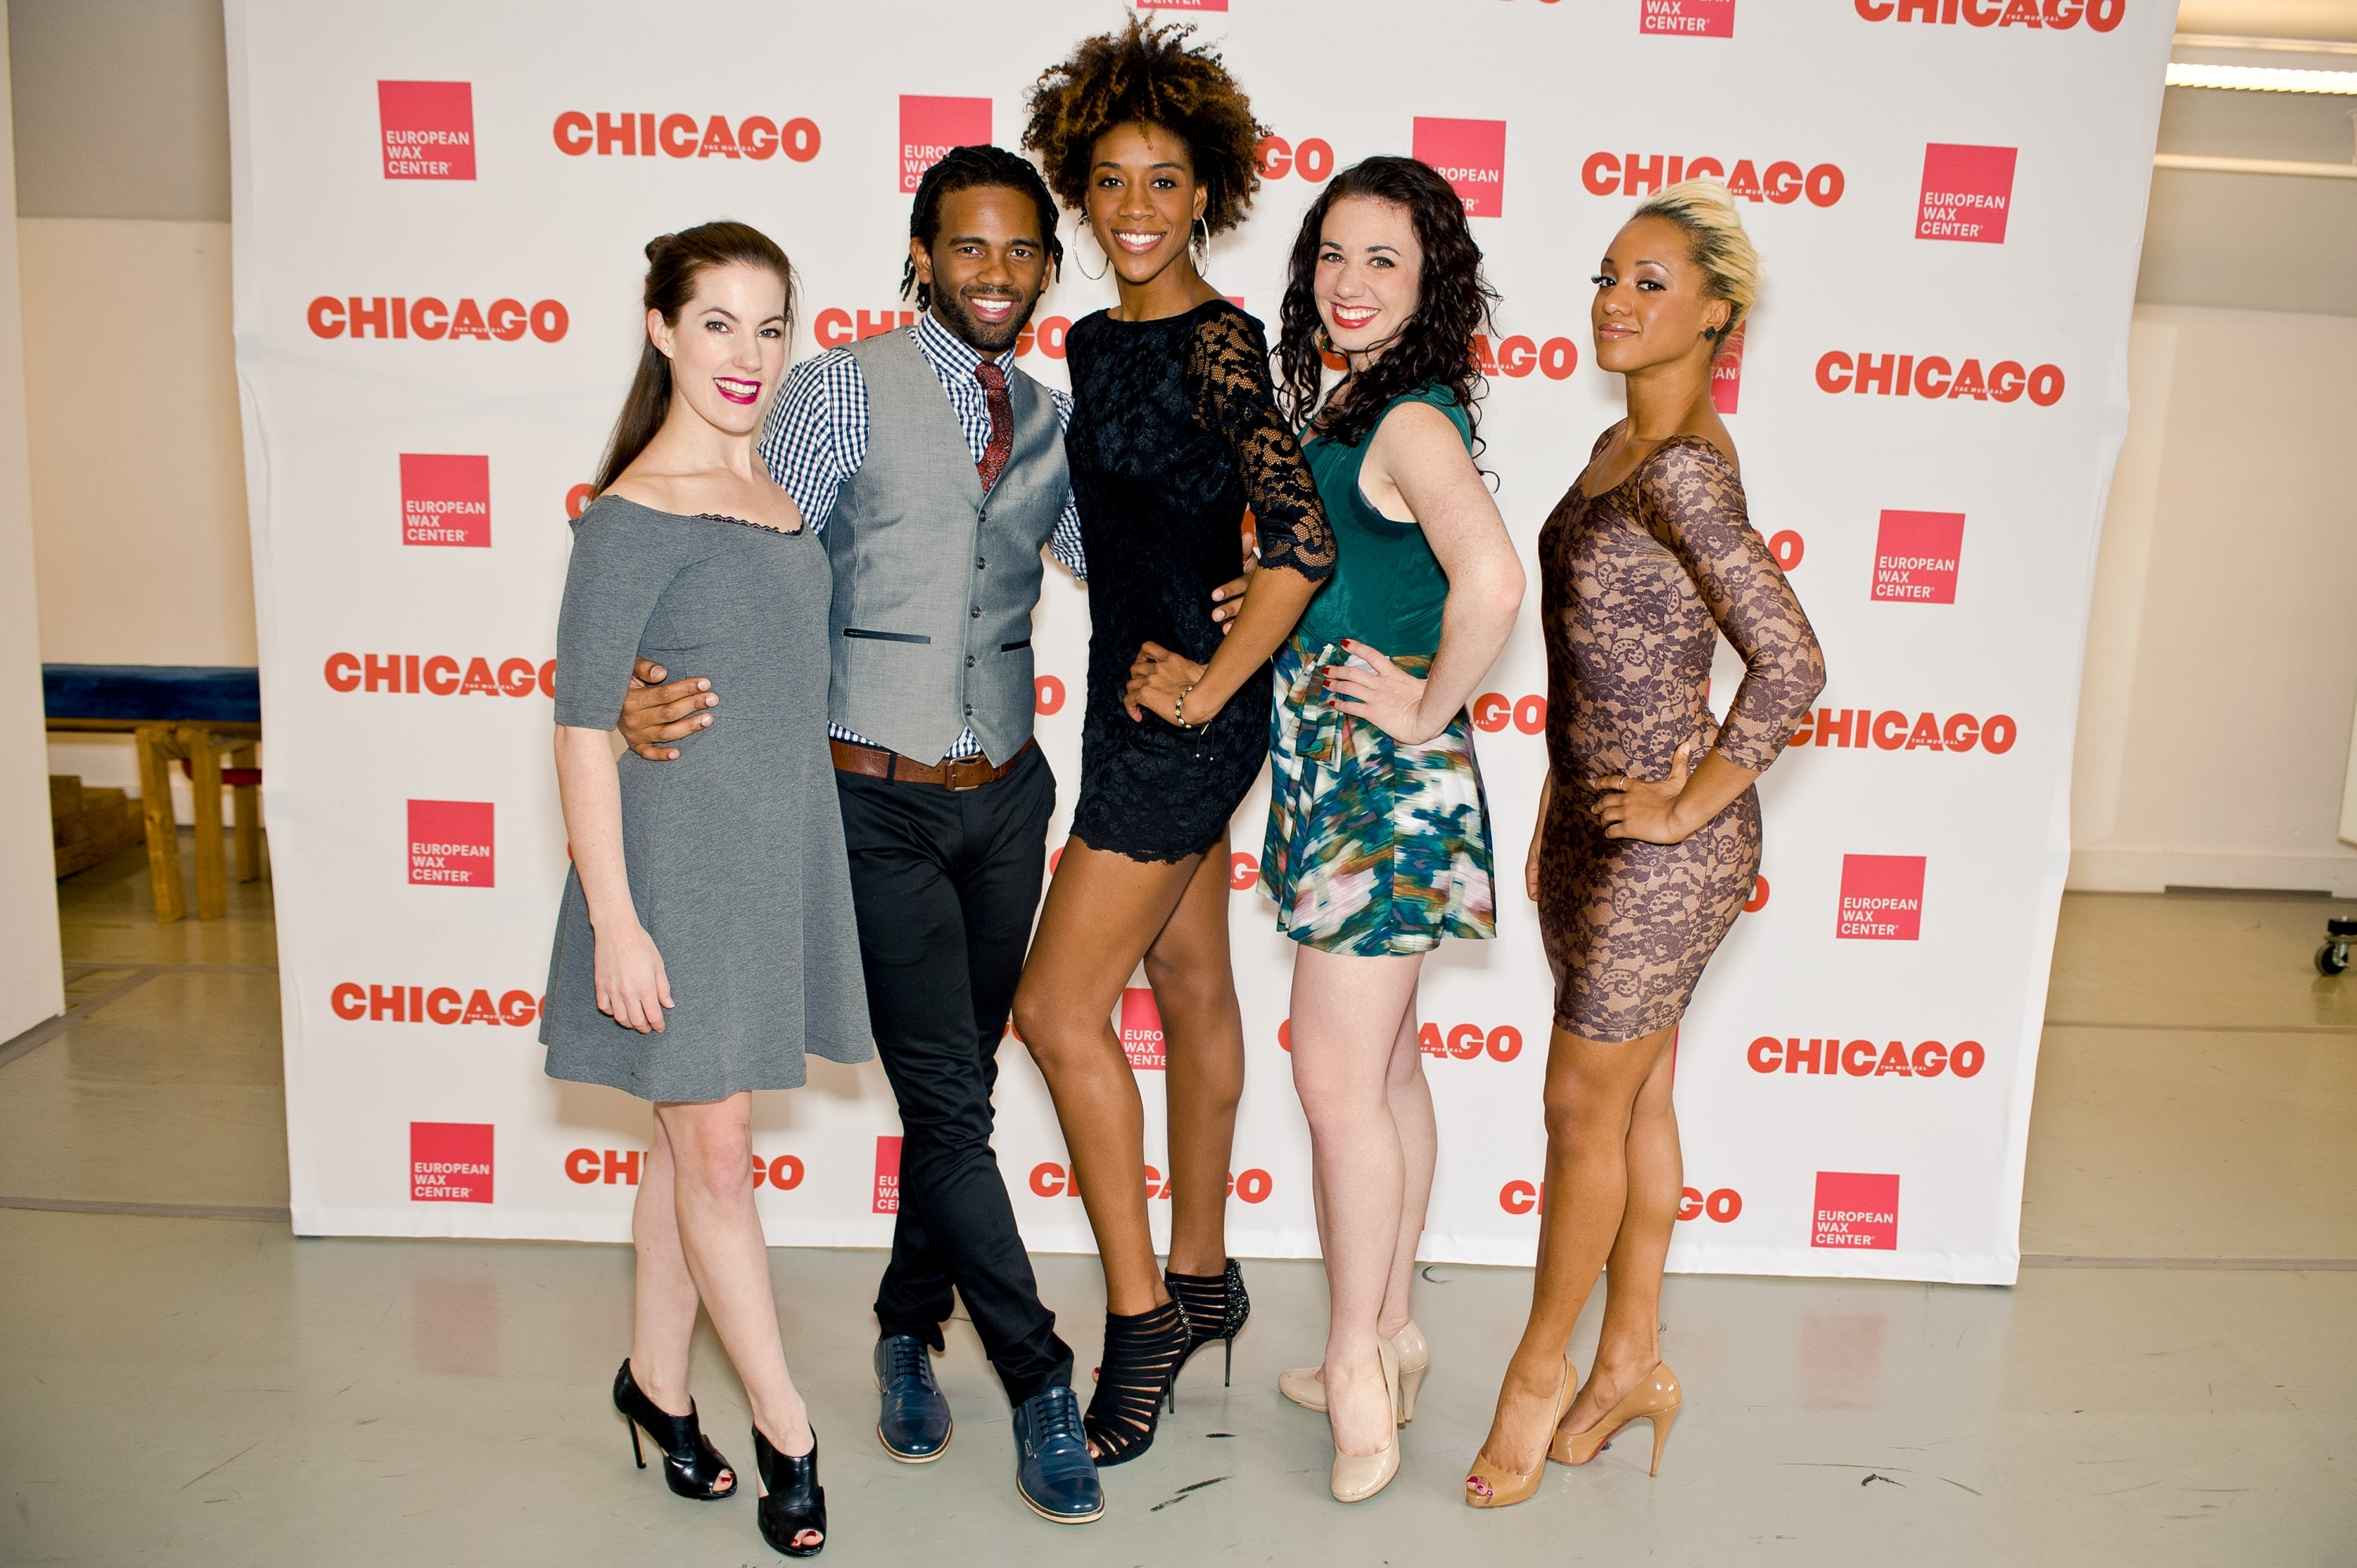 European Wax Center and CHICAGO the musical celebrate their partnership at opening night in Chicago. European Wax Center are the experts at revealing beautiful skin and who better to help showcase that then Broadway's sexiest musical, CHICAGO! The show runs from February 25th - March 2nd at the Bank of America Theatre in Chicago. (Photo: Business Wire)